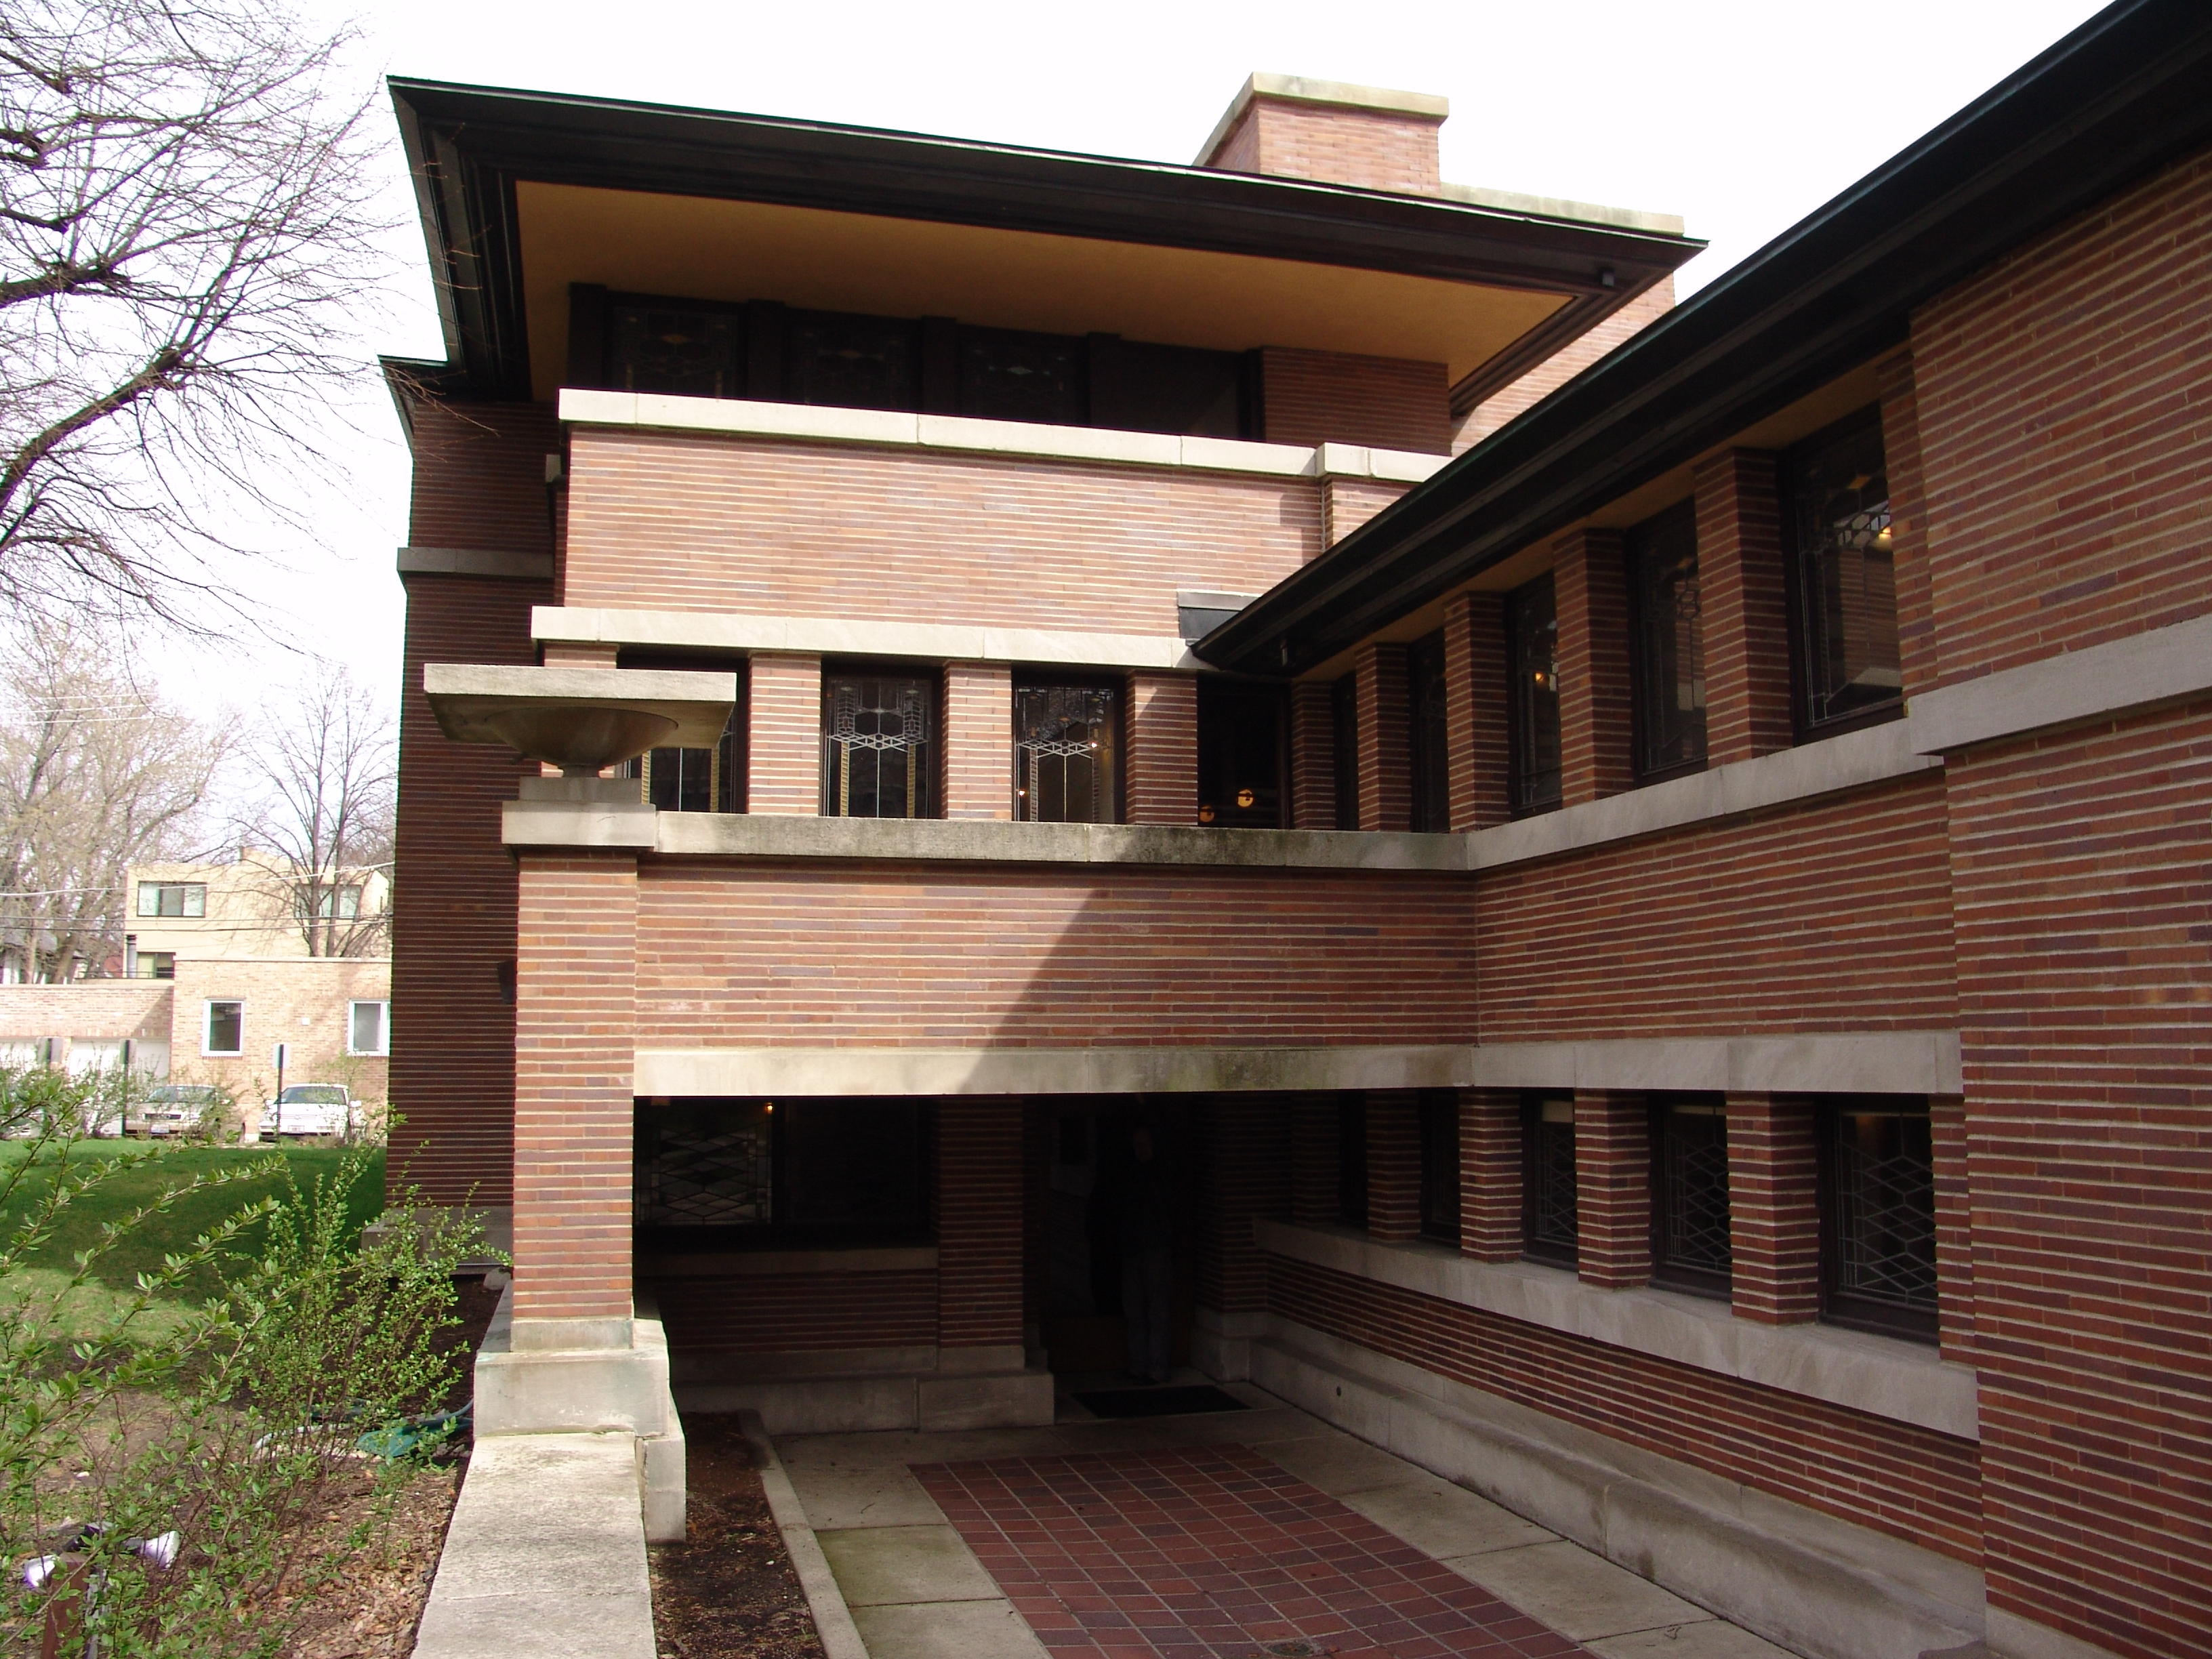 an introduction to the analysis of the work by frank lloyd wright I introduction ii analysis of the david wright house under section 807d see sixty years of living architecture, the work of frank lloyd wright.